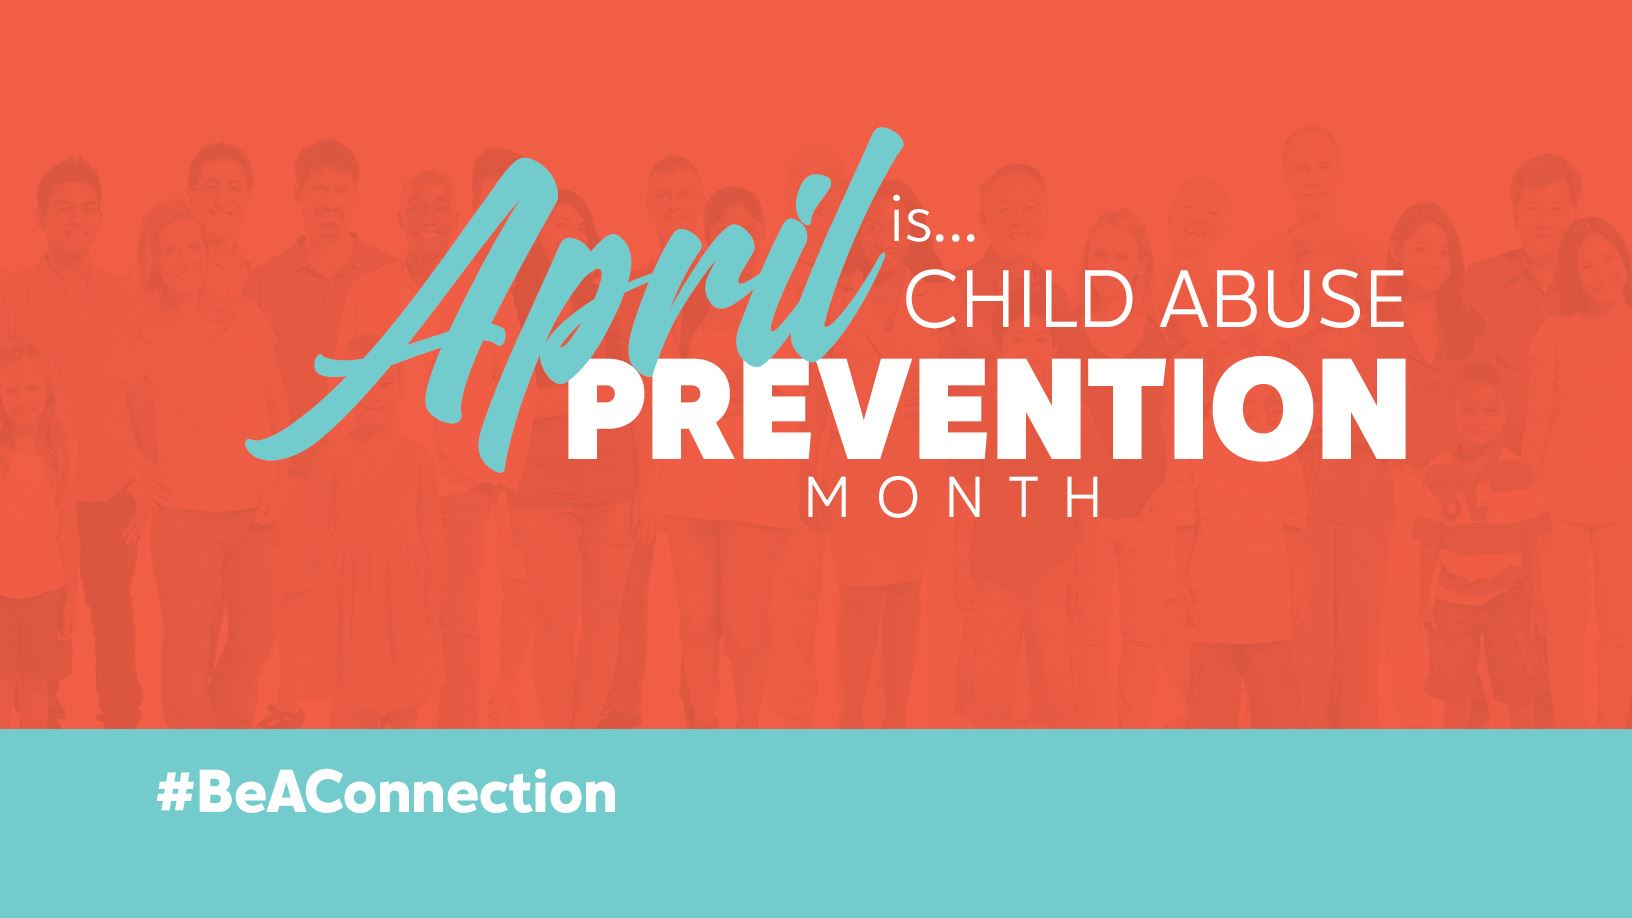 April Is Child Abuse Prevention Month Promotional Image